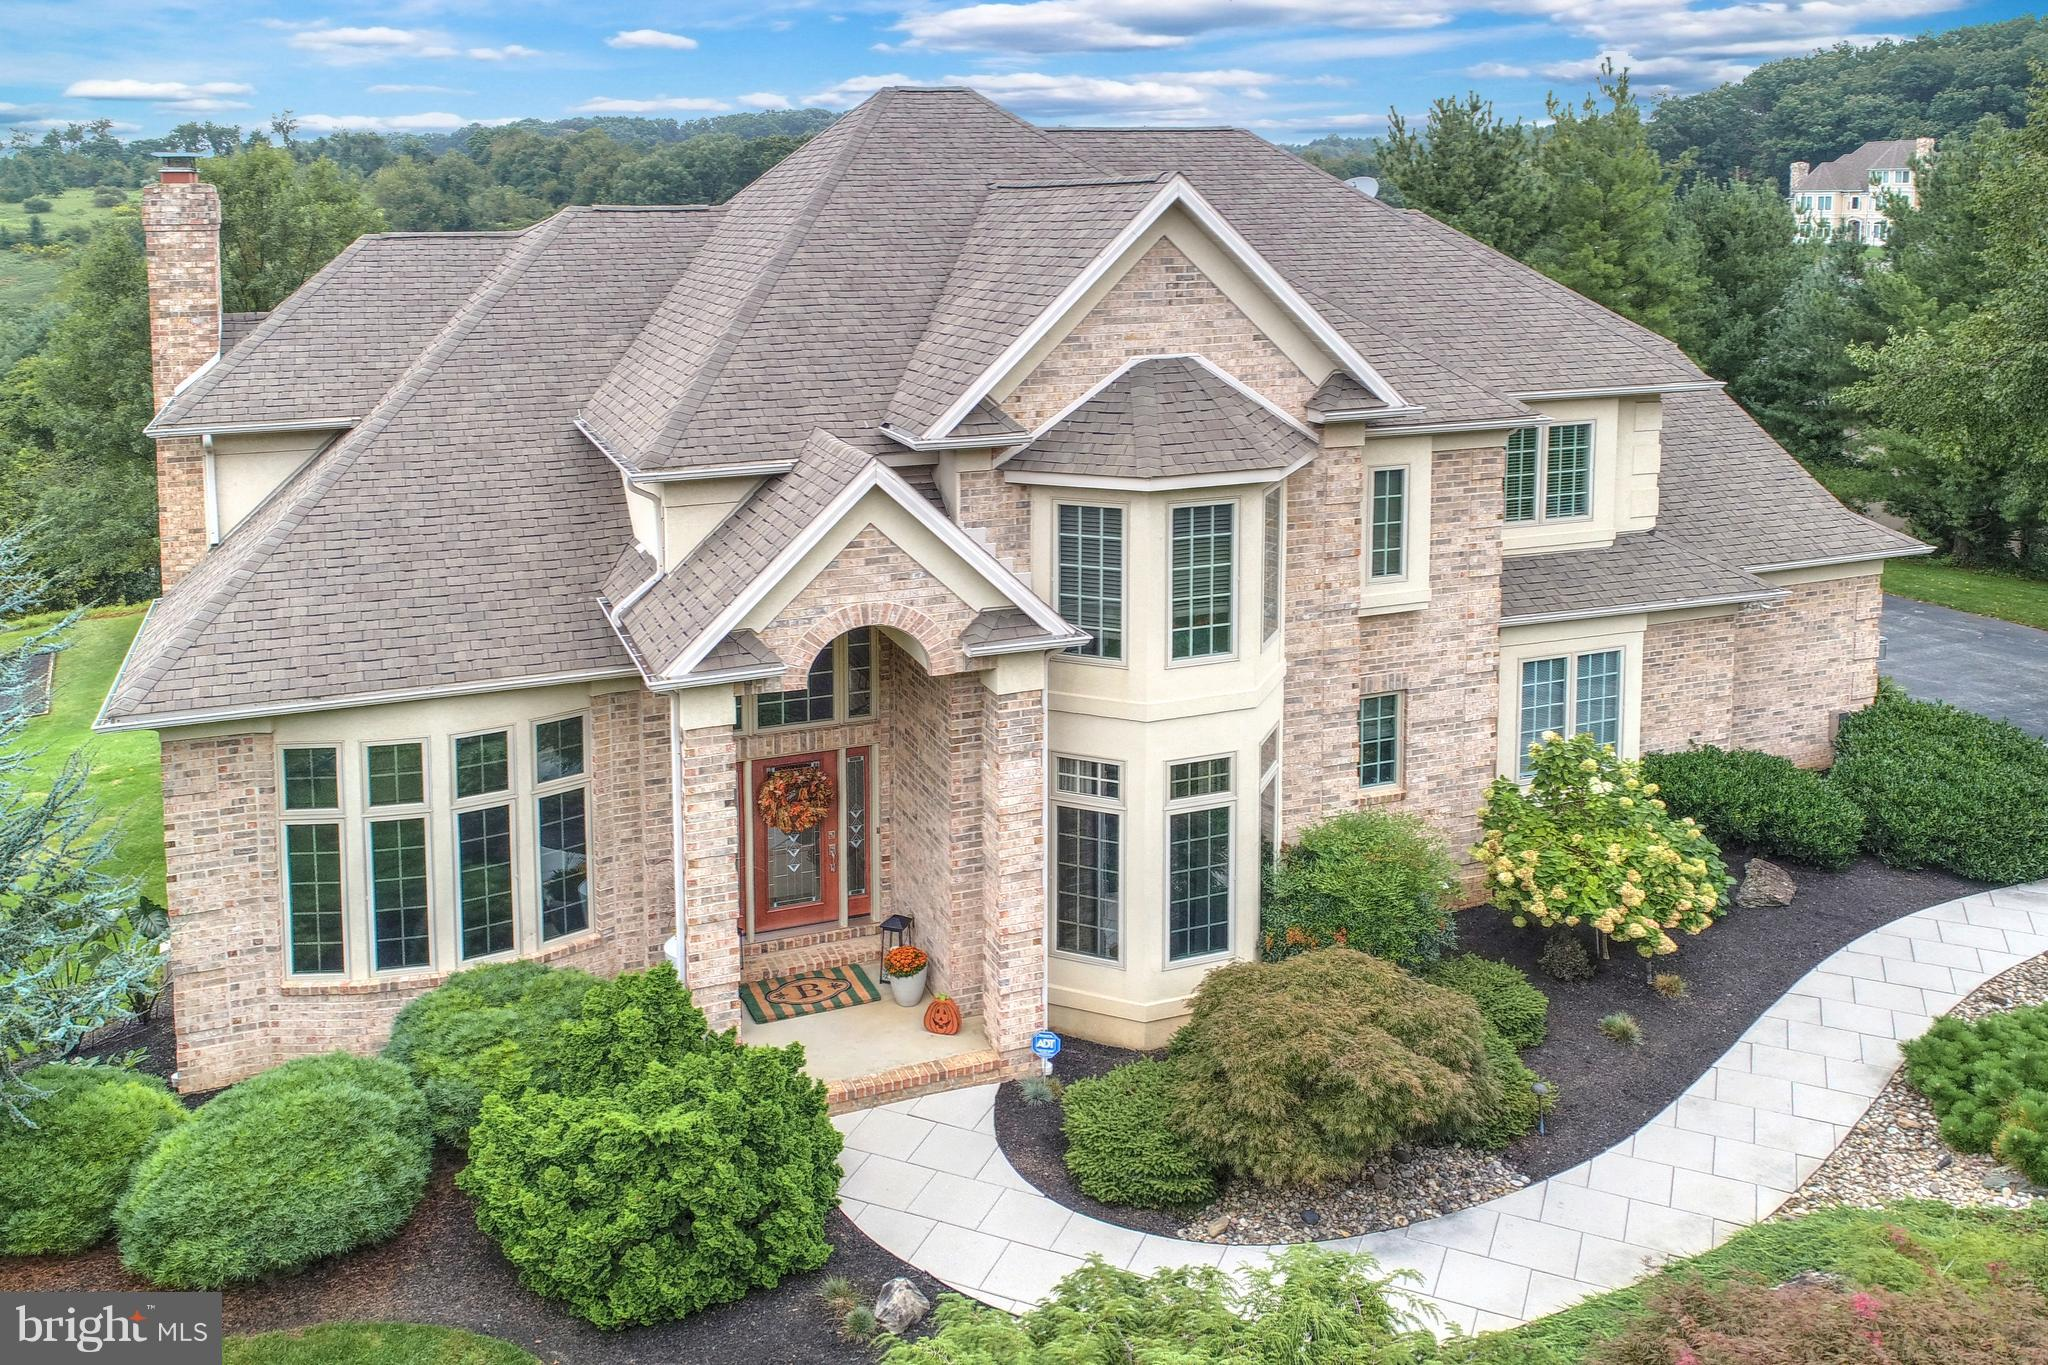 2816 DEER CHASE LANE, YORK, PA 17403